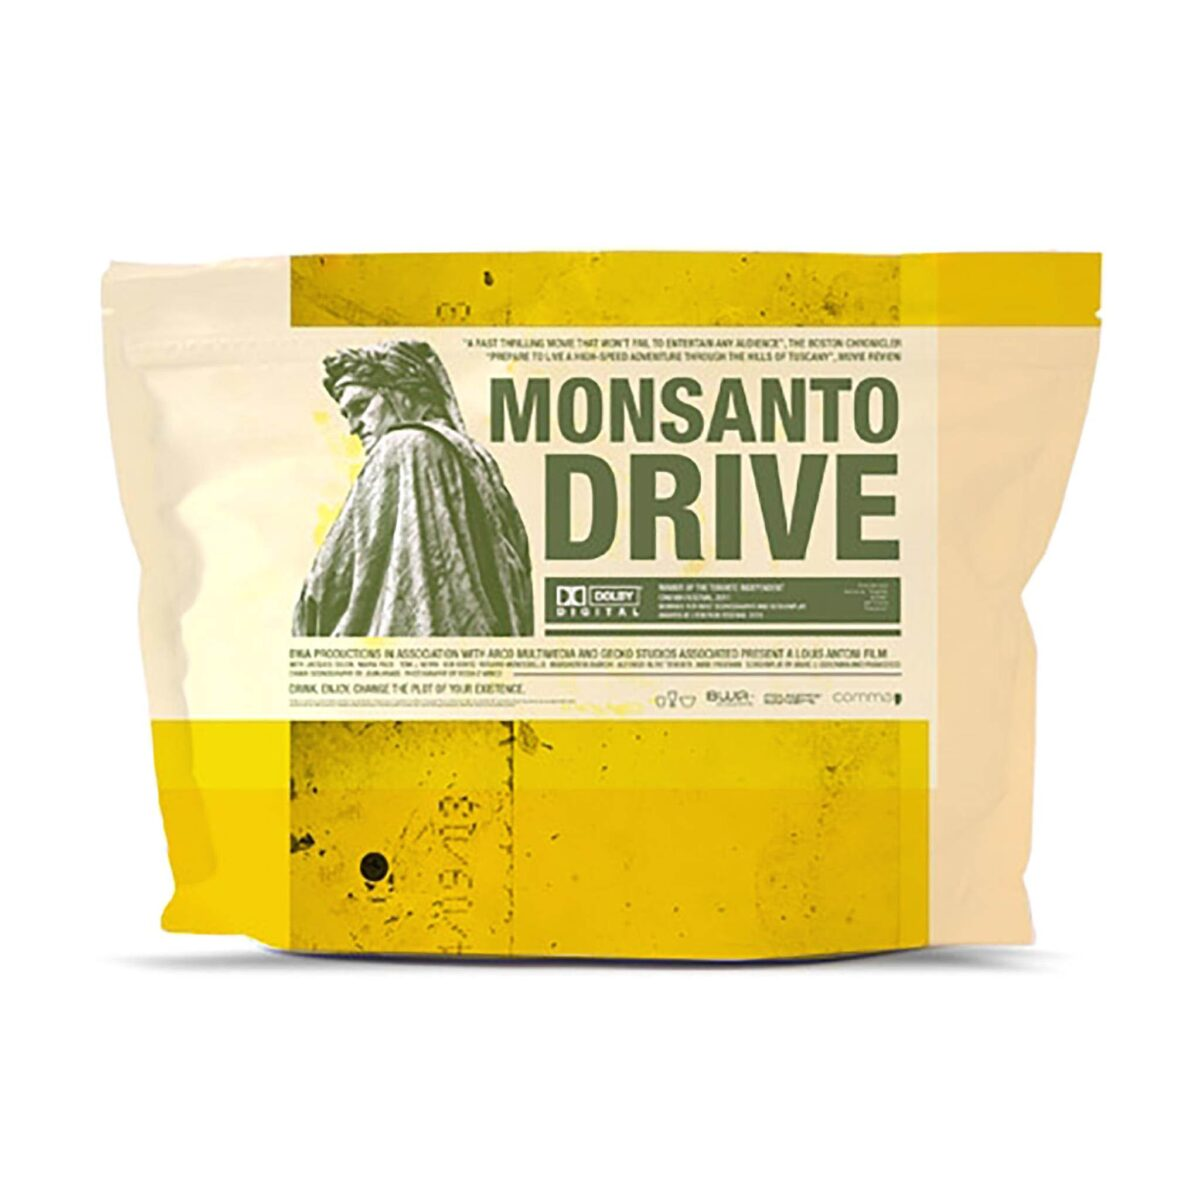 MONSANTO DRIVE - GLASS